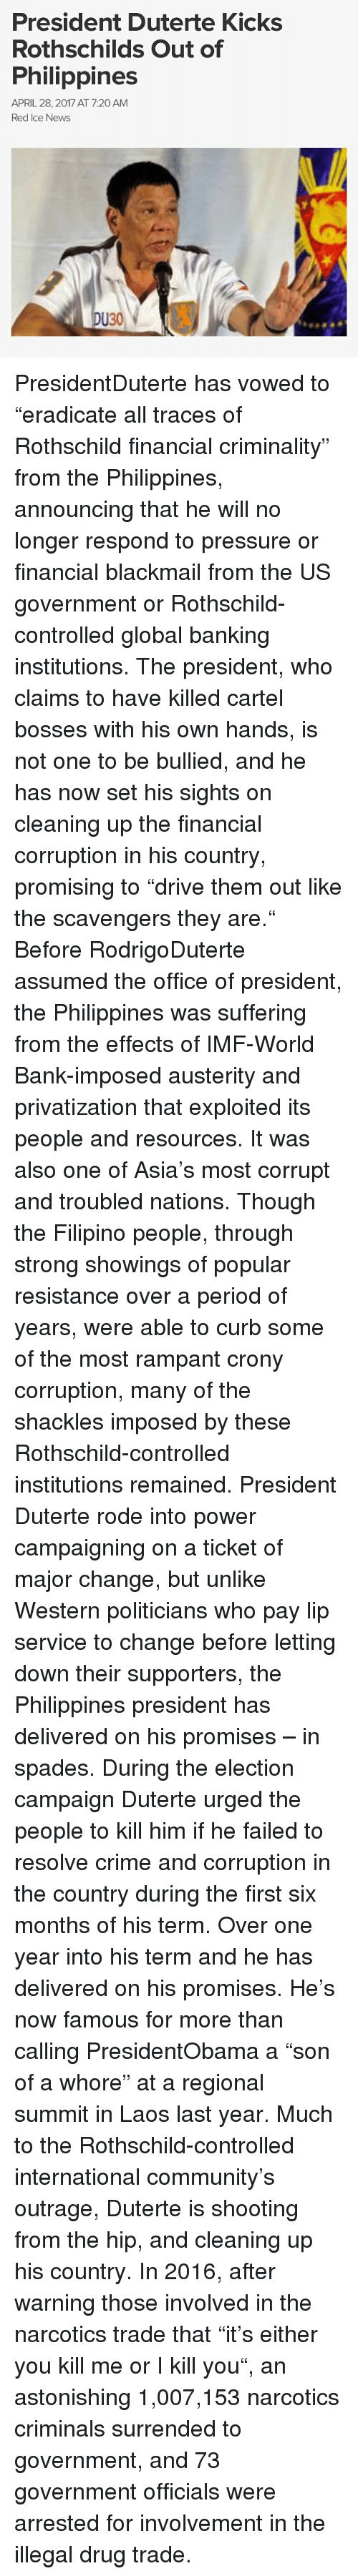 """laos: President Duterte Kicks  Rothschilds Out of  Philippines  APRIL 28, 2017 AT 7:20 AM  Red Ice News  DU30 PresidentDuterte has vowed to """"eradicate all traces of Rothschild financial criminality"""" from the Philippines, announcing that he will no longer respond to pressure or financial blackmail from the US government or Rothschild-controlled global banking institutions. The president, who claims to have killed cartel bosses with his own hands, is not one to be bullied, and he has now set his sights on cleaning up the financial corruption in his country, promising to """"drive them out like the scavengers they are."""" Before RodrigoDuterte assumed the office of president, the Philippines was suffering from the effects of IMF-World Bank-imposed austerity and privatization that exploited its people and resources. It was also one of Asia's most corrupt and troubled nations. Though the Filipino people, through strong showings of popular resistance over a period of years, were able to curb some of the most rampant crony corruption, many of the shackles imposed by these Rothschild-controlled institutions remained. President Duterte rode into power campaigning on a ticket of major change, but unlike Western politicians who pay lip service to change before letting down their supporters, the Philippines president has delivered on his promises – in spades. During the election campaign Duterte urged the people to kill him if he failed to resolve crime and corruption in the country during the first six months of his term. Over one year into his term and he has delivered on his promises. He's now famous for more than calling PresidentObama a """"son of a whore"""" at a regional summit in Laos last year. Much to the Rothschild-controlled international community's outrage, Duterte is shooting from the hip, and cleaning up his country. In 2016, after warning those involved in the narcotics trade that """"it's either you kill me or I kill you"""", an astonishing 1,007,153 narcotics criminals surren"""